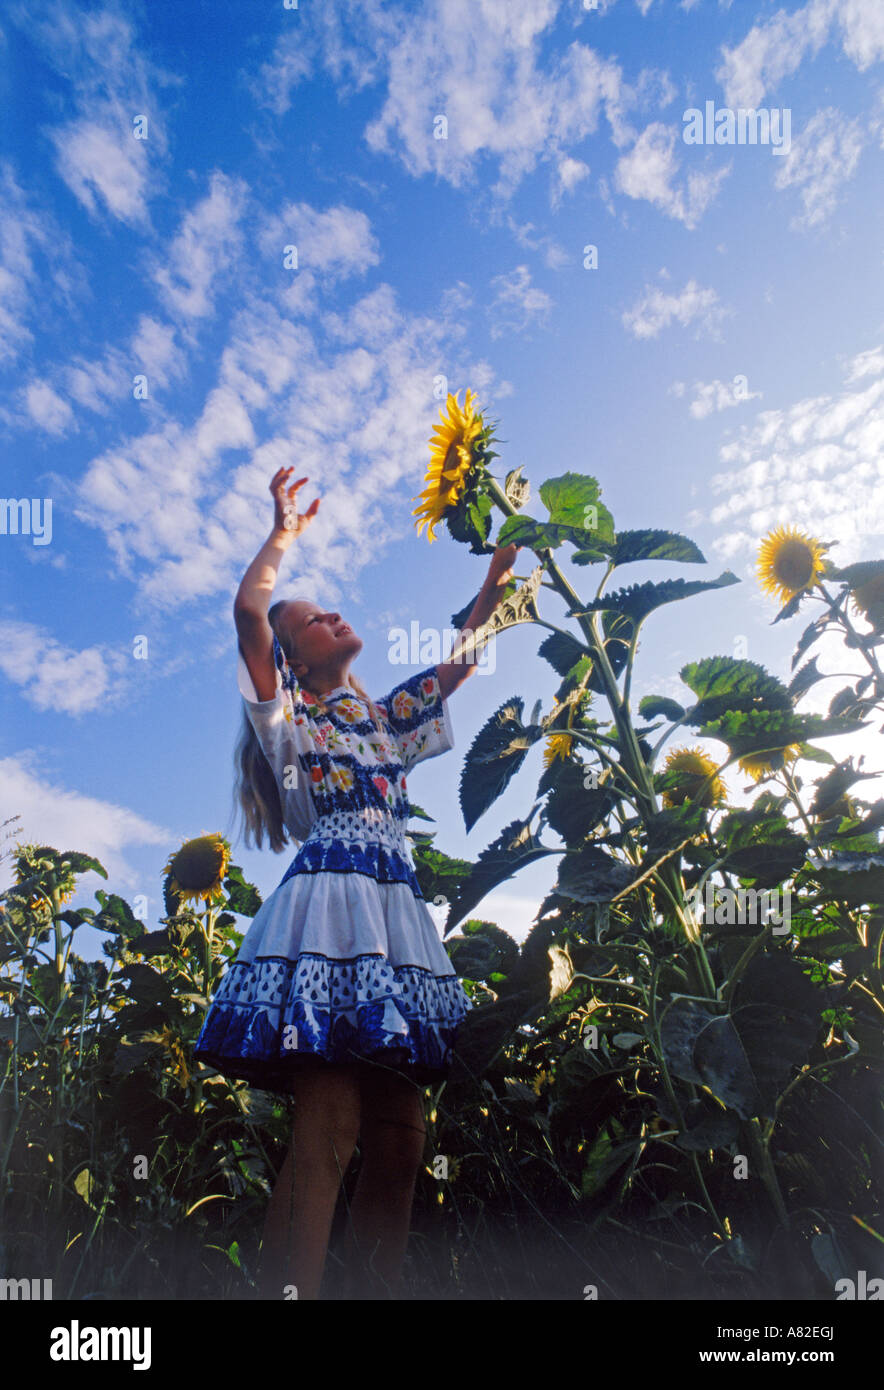 Girl reaching up for sunflower under blue skies in Provence - Stock Image